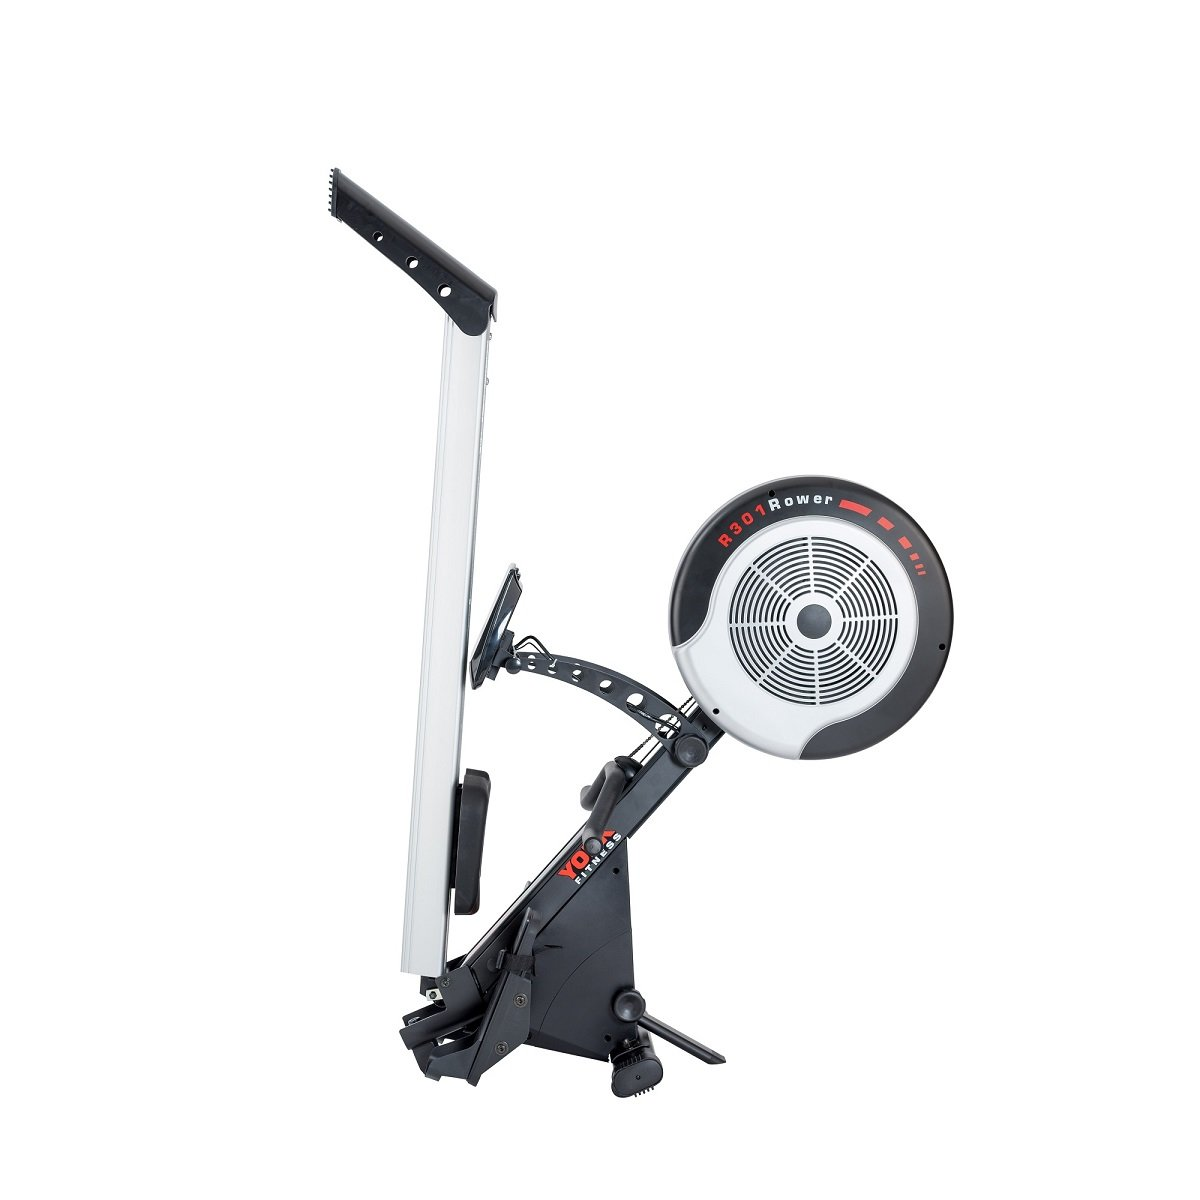 York Fitness Rowing Machine R301 Review